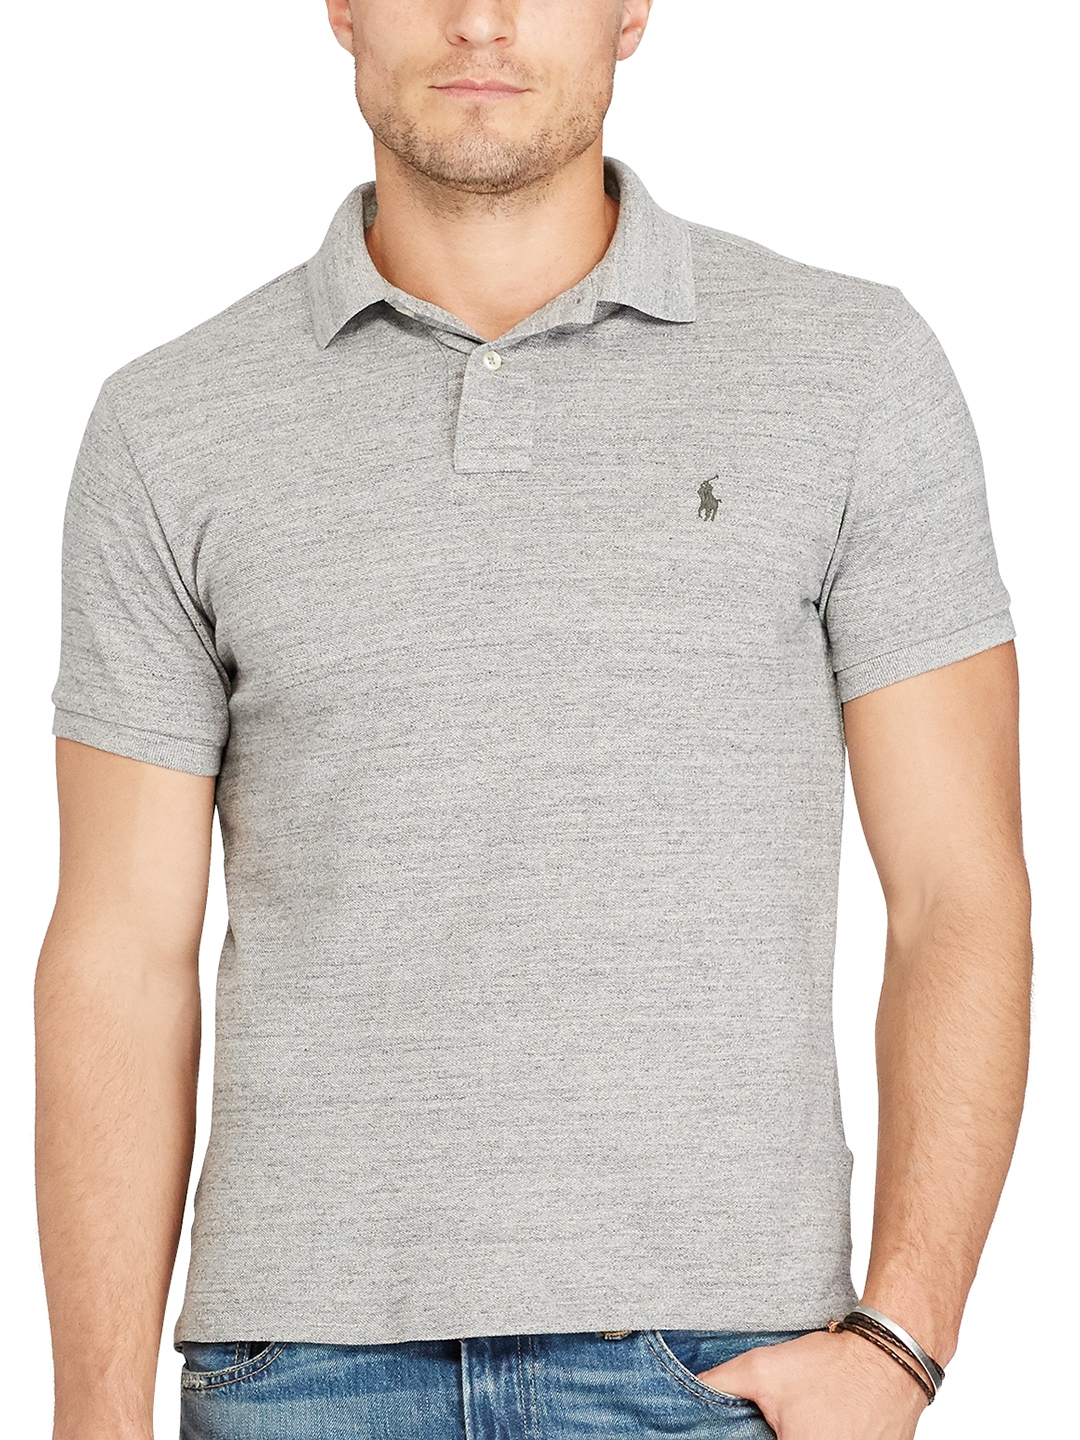 5bc9ee27 Buy Polo Ralph Lauren Custom Fit Weathered Mesh Polo - Tshirts for ...